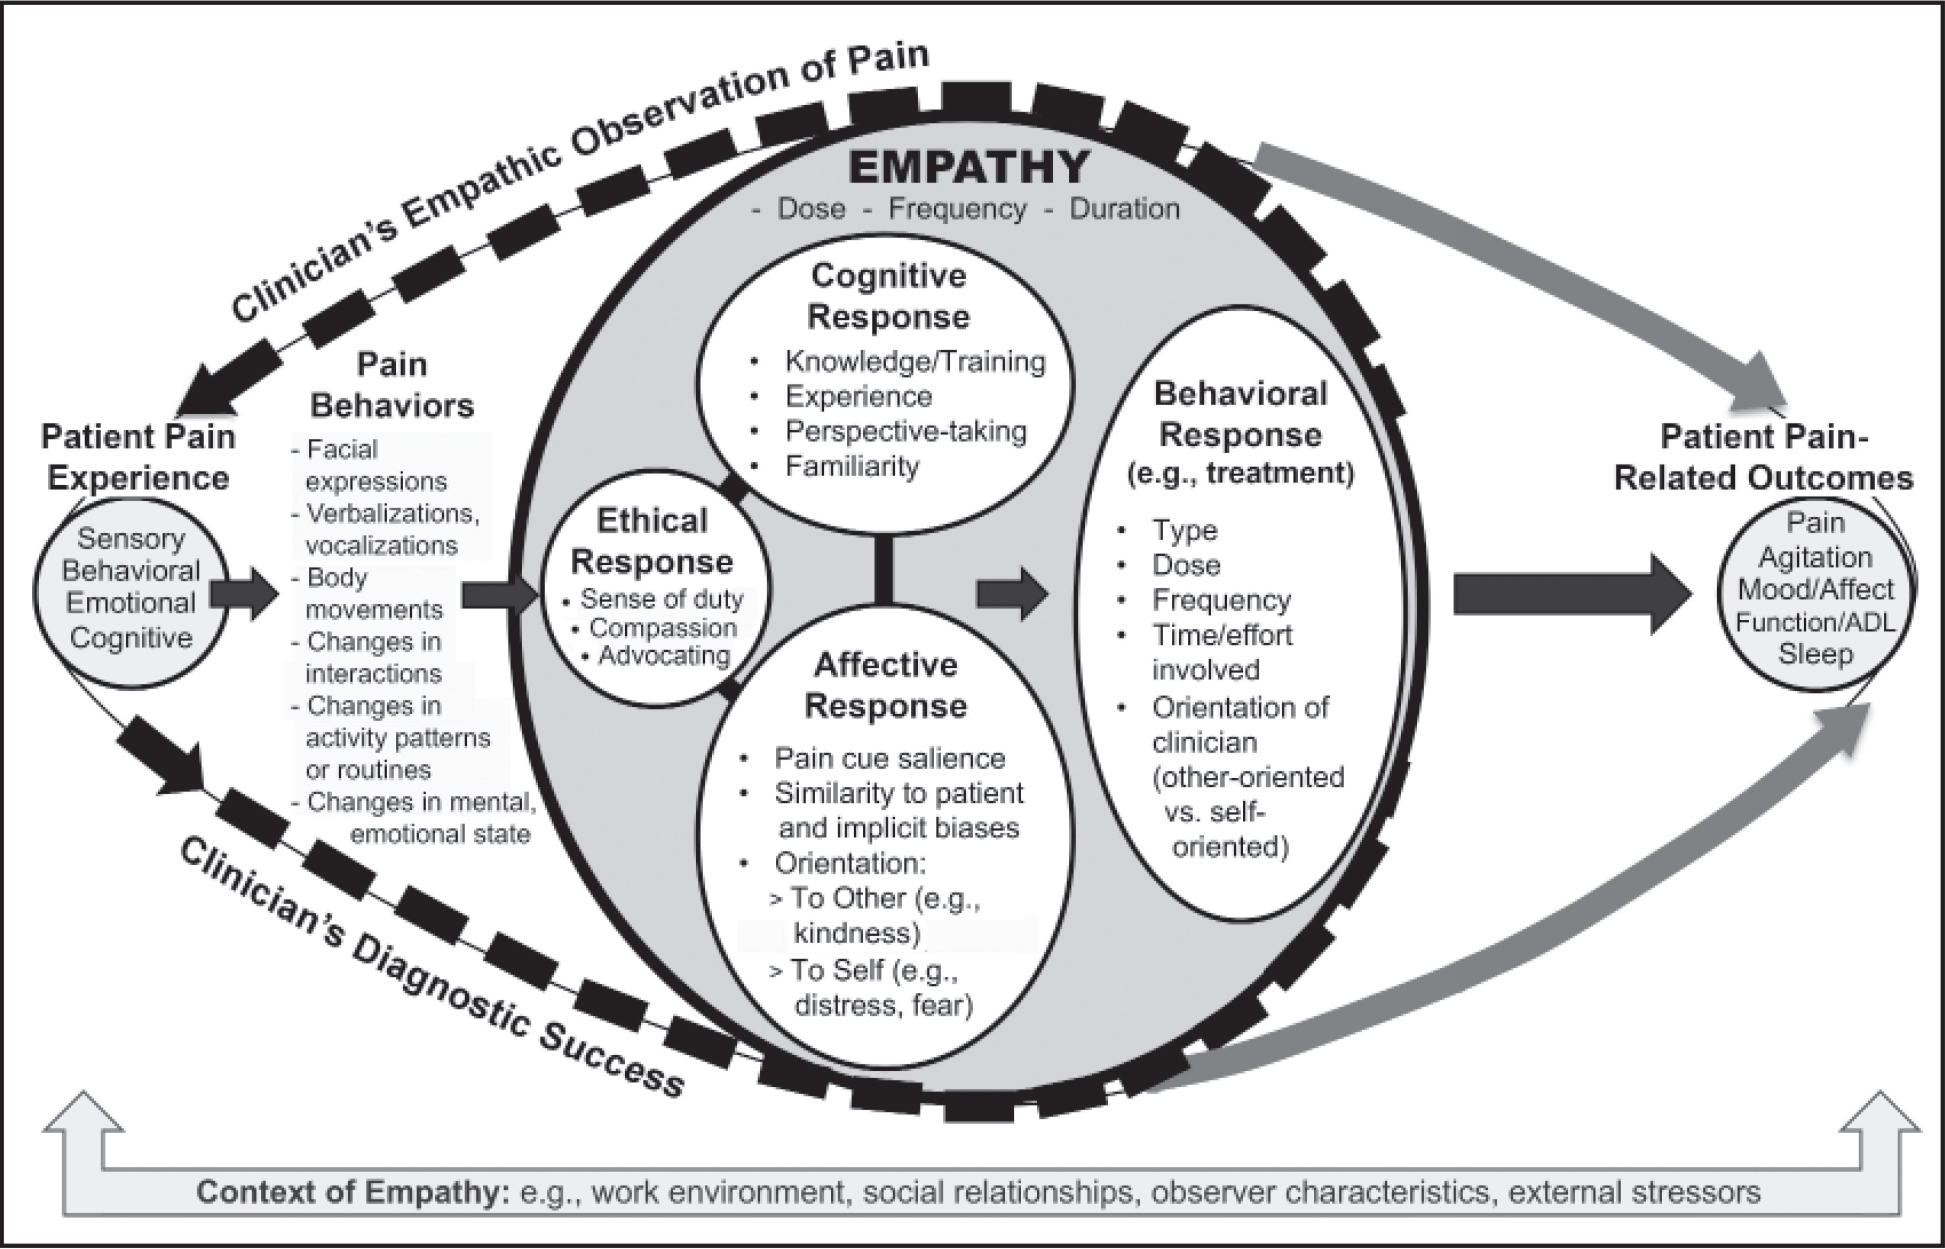 Model of empathic pain assessment in persons with dementia. A person with advanced dementia experiences multidimensional pain and expresses that pain through behavioral indicators, which are observed and assessed by a clinician. Empathy—which comprises an ethical response, cognitive response, affective response, and behavioral response—influences the clinician's observation, assessment and diagnostic success, and resulting actions. Clinicians' behaviors (e.g., treatment) influence pain and empirically correlated pain-related outcomes in persons with dementia. This process occurs in the context of cultural, situational, environmental, and social factors.